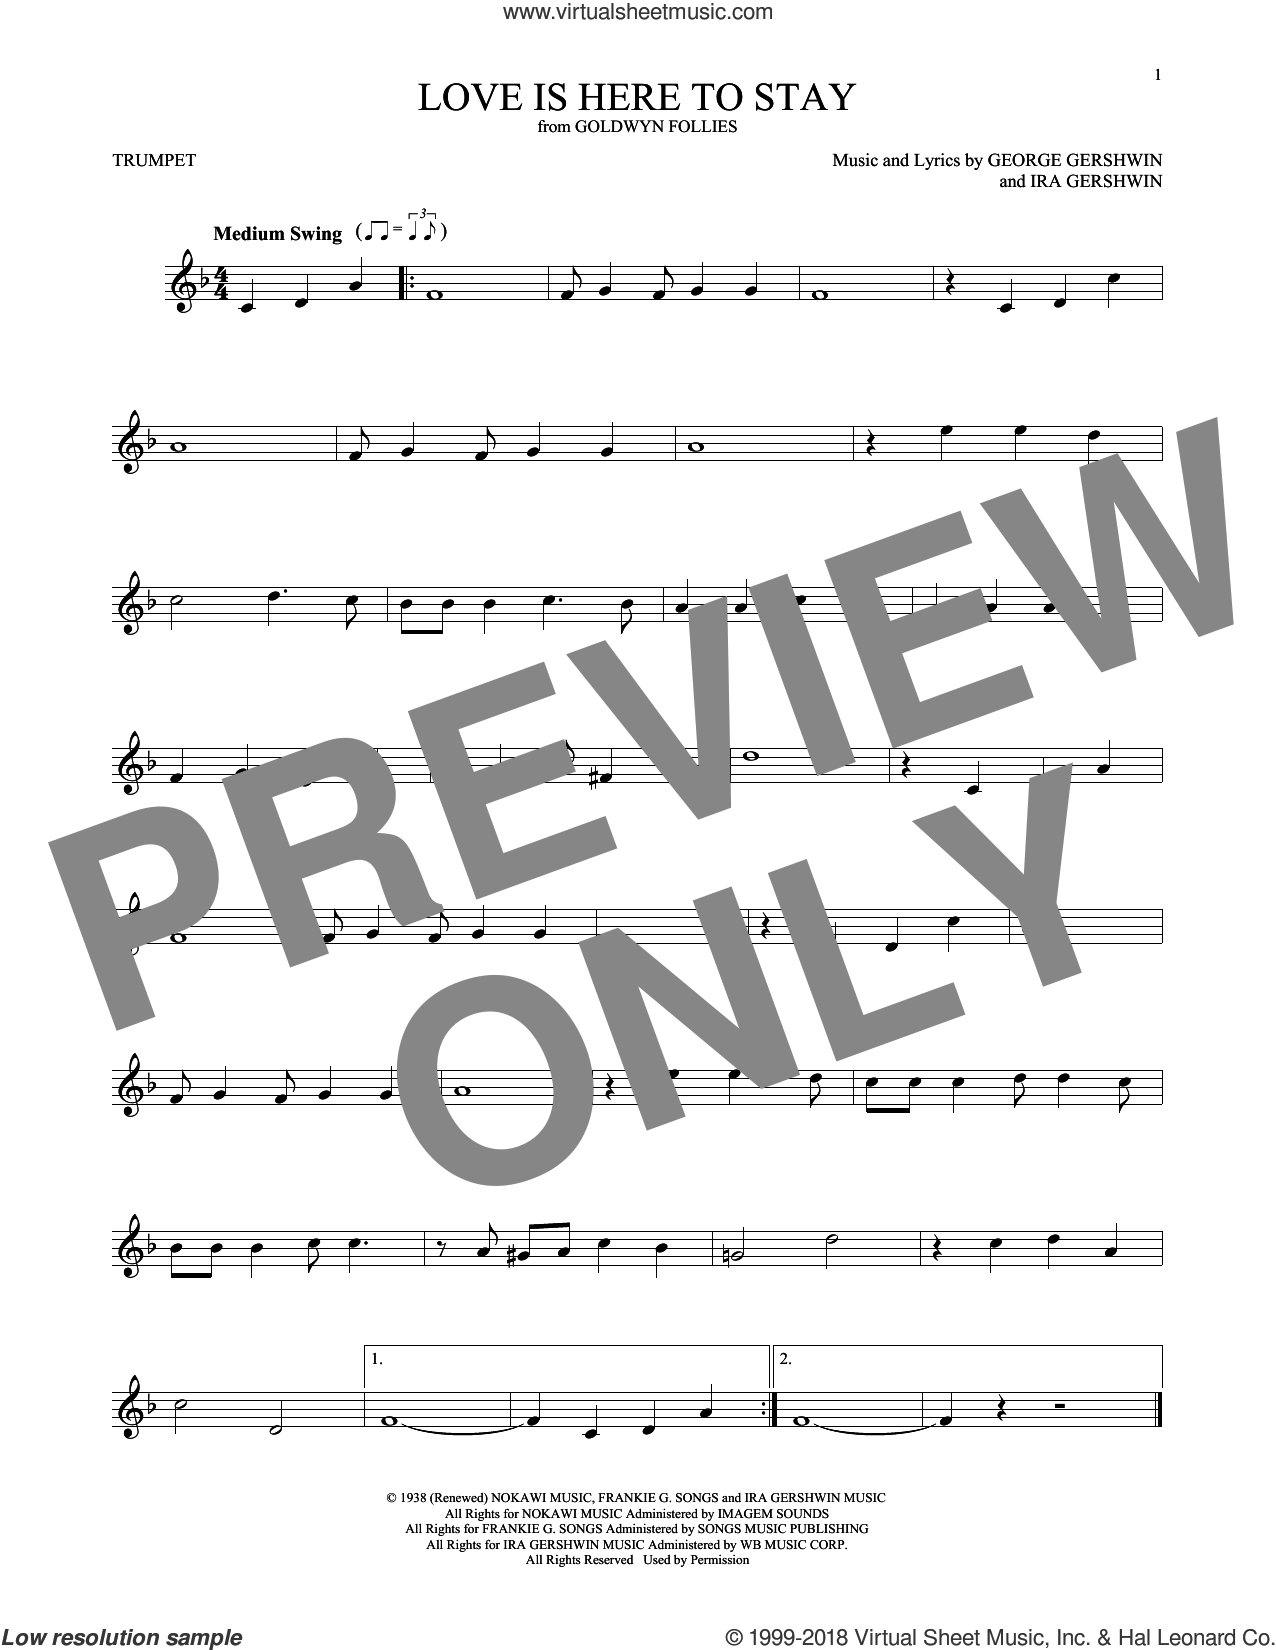 Love Is Here To Stay sheet music for trumpet solo by George Gershwin and Ira Gershwin. Score Image Preview.